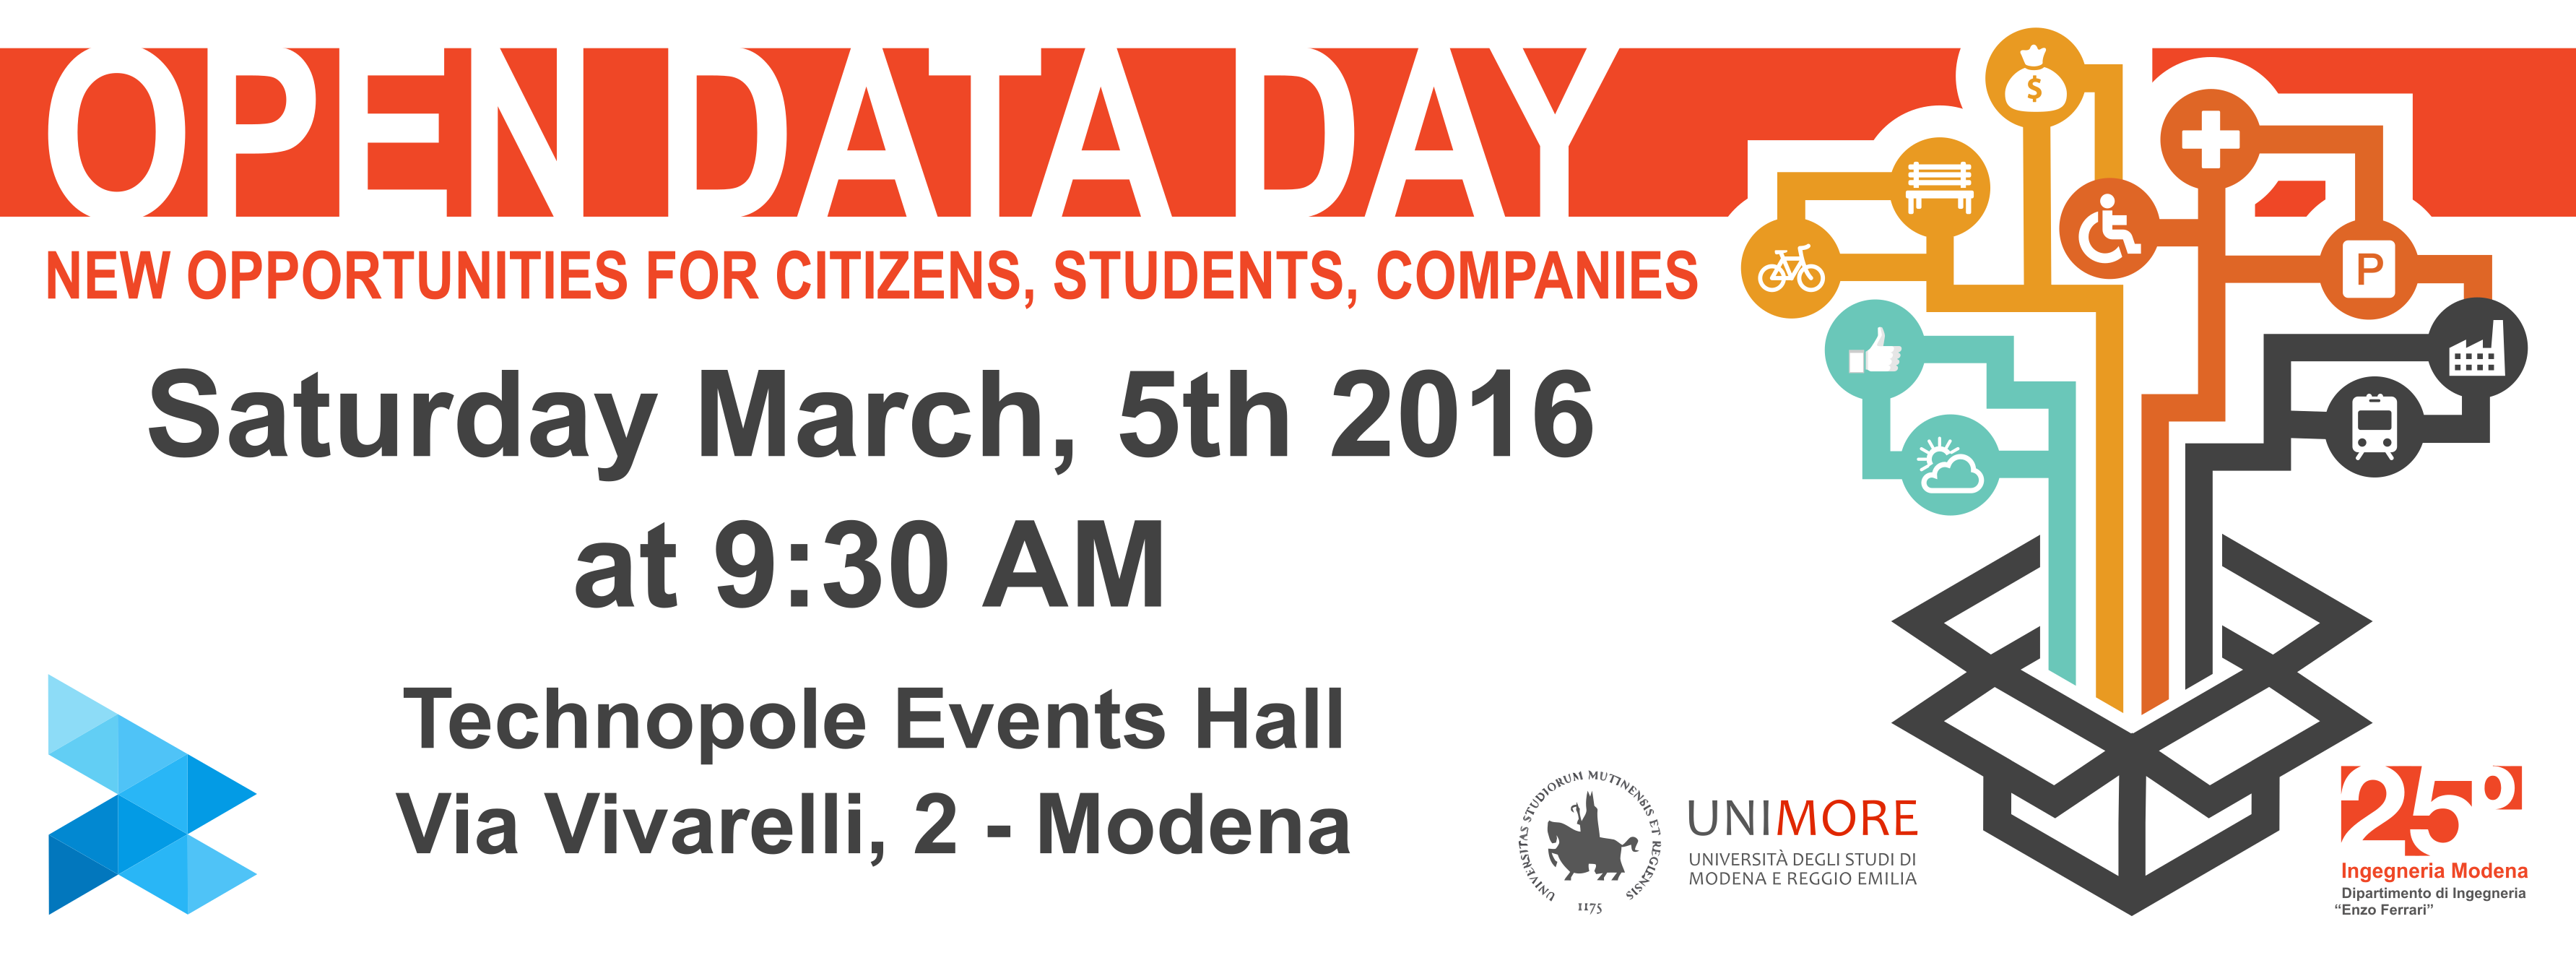 news-open-data-day-2016-ENG